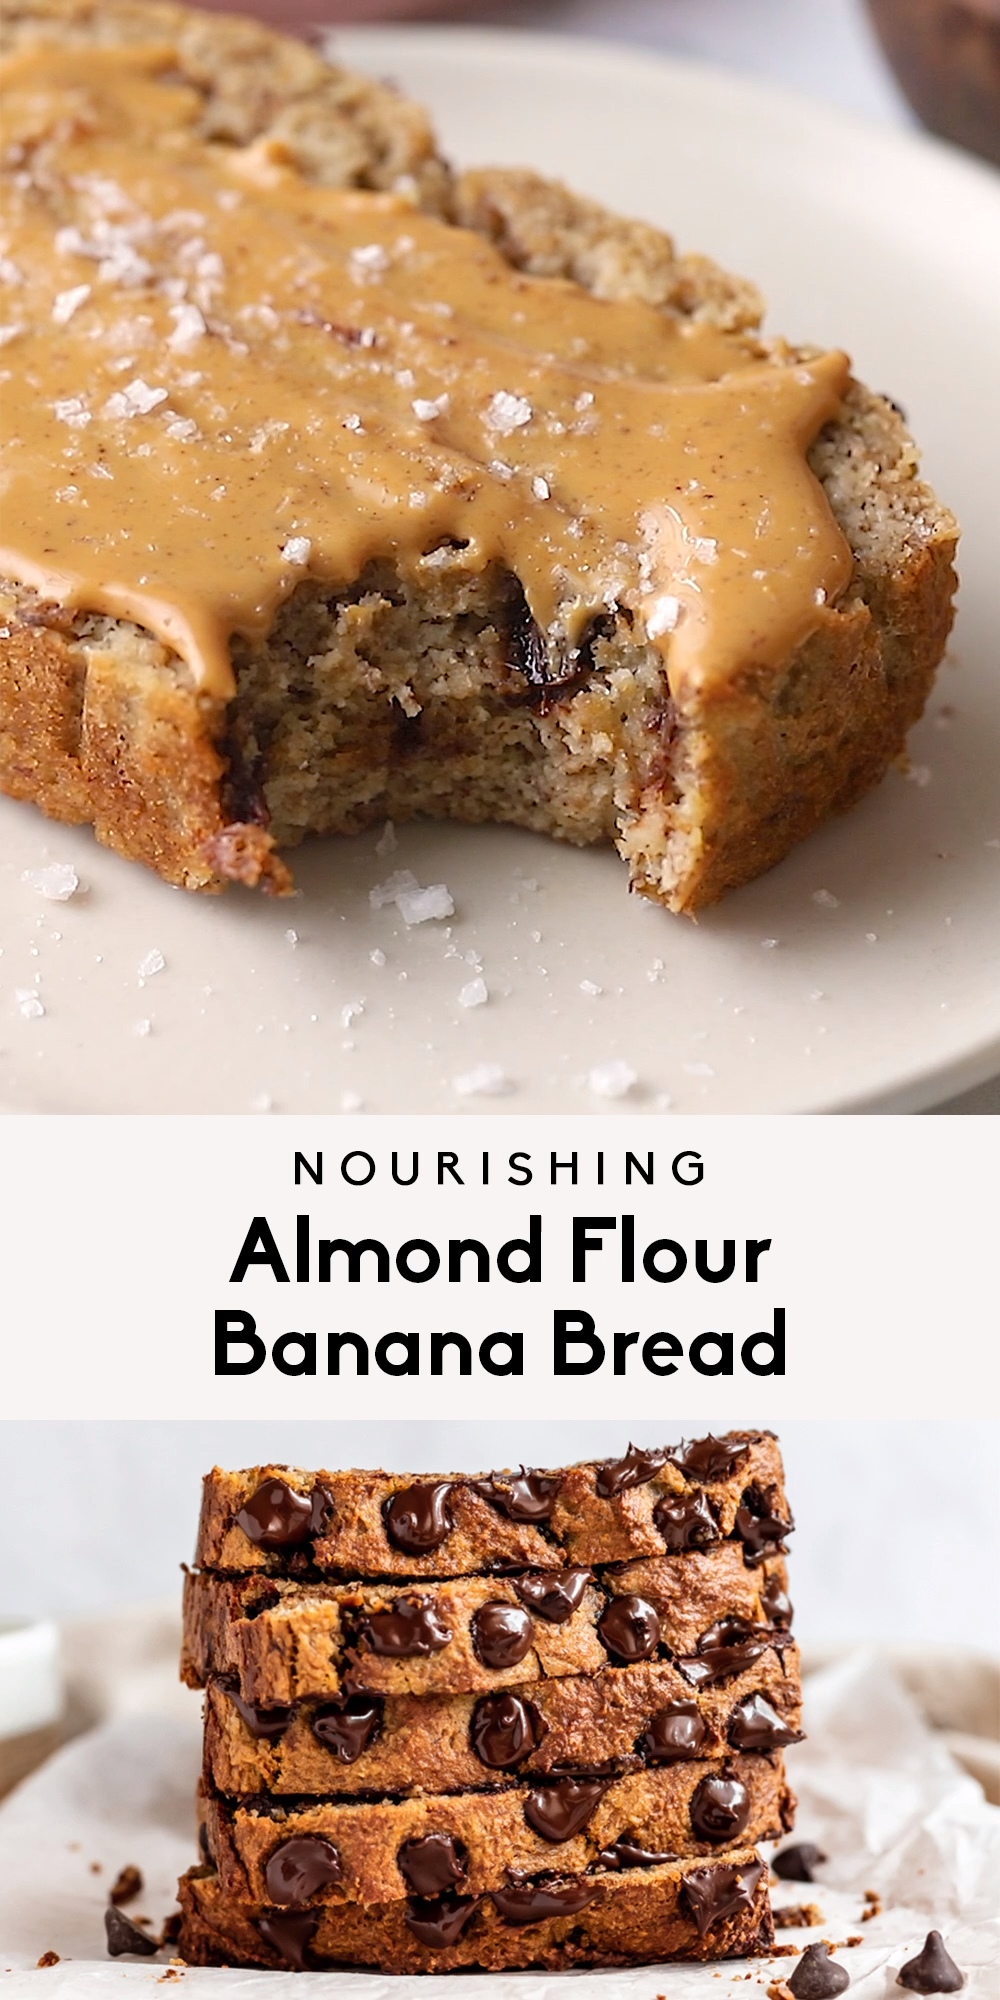 Nourishing Almond Flour Banana Bread